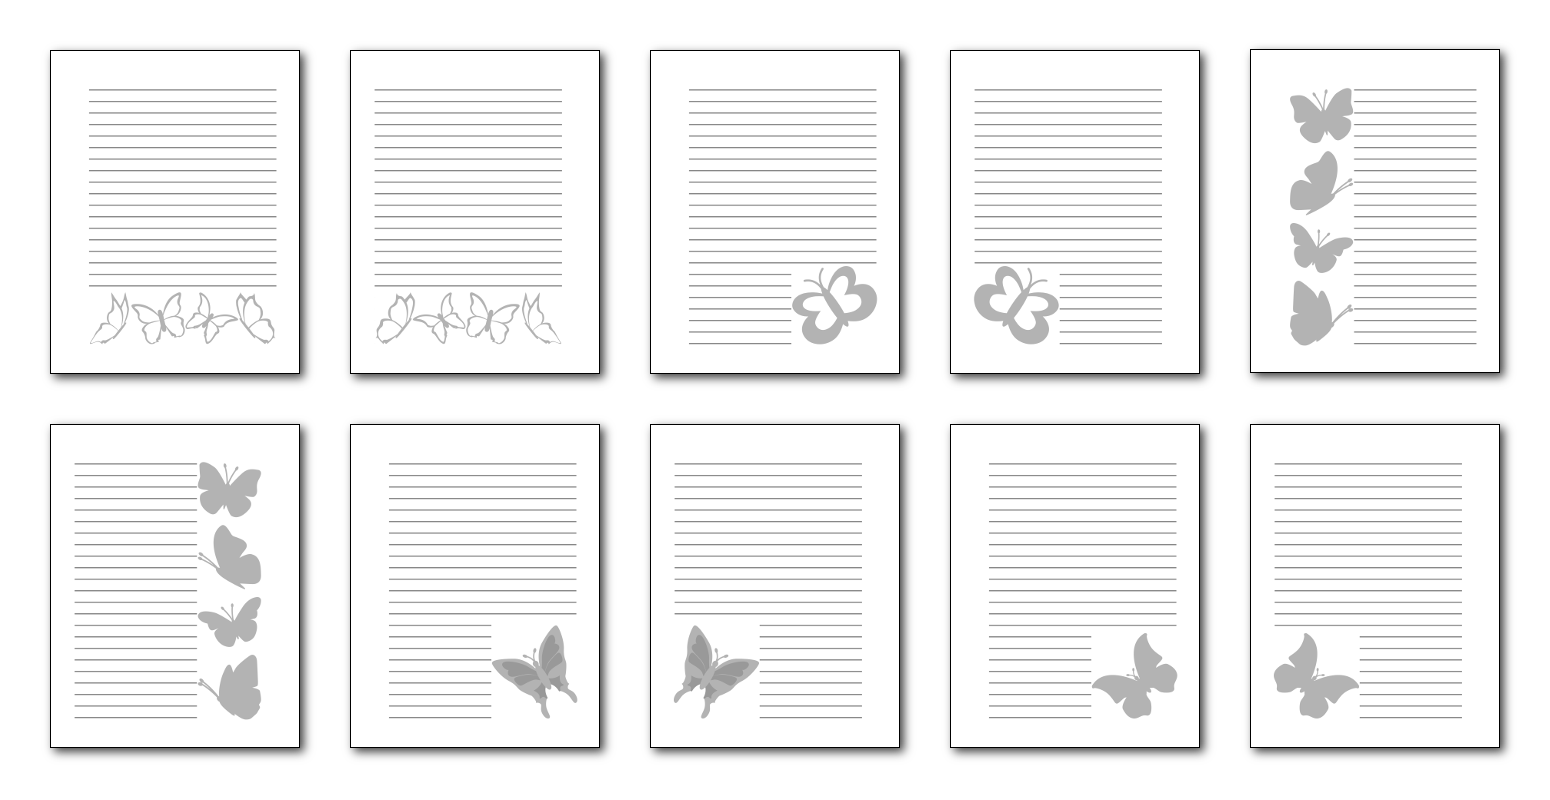 Zen PLR Beautiful Butterflies Journal Templates Upgrade Journal Pages Grayscale Print